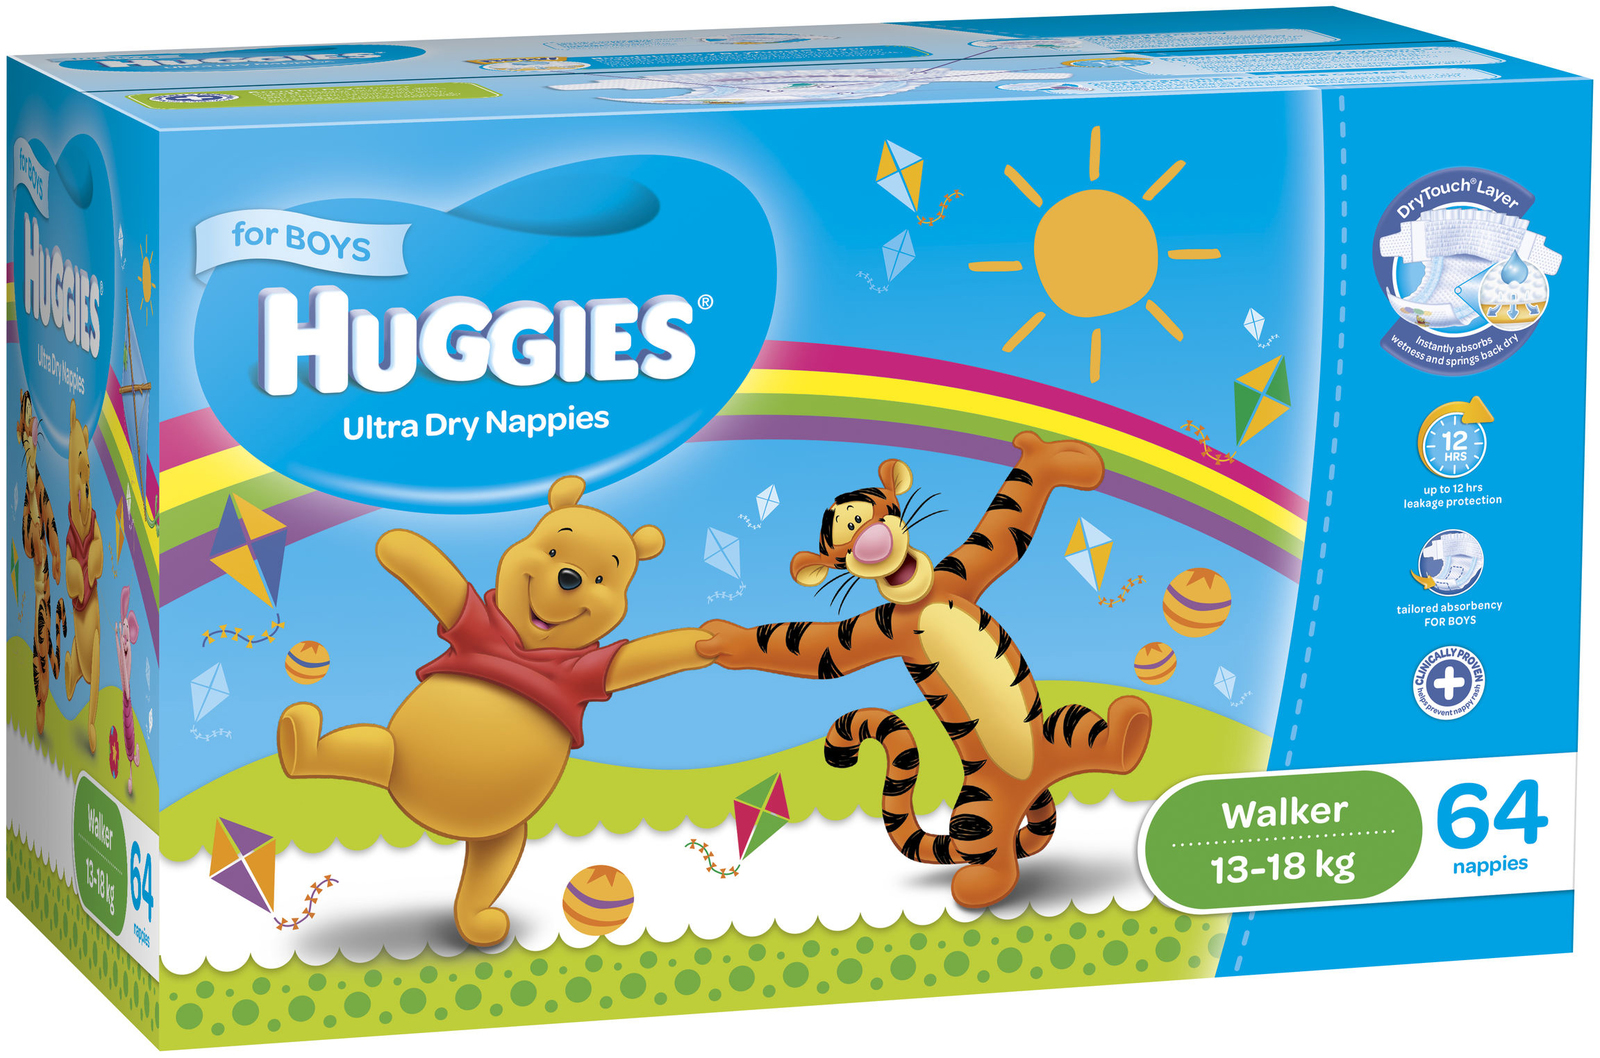 Huggies Ultra Dry Nappies: Jumbo Pack - Walker Boy 13-18kg (64) image